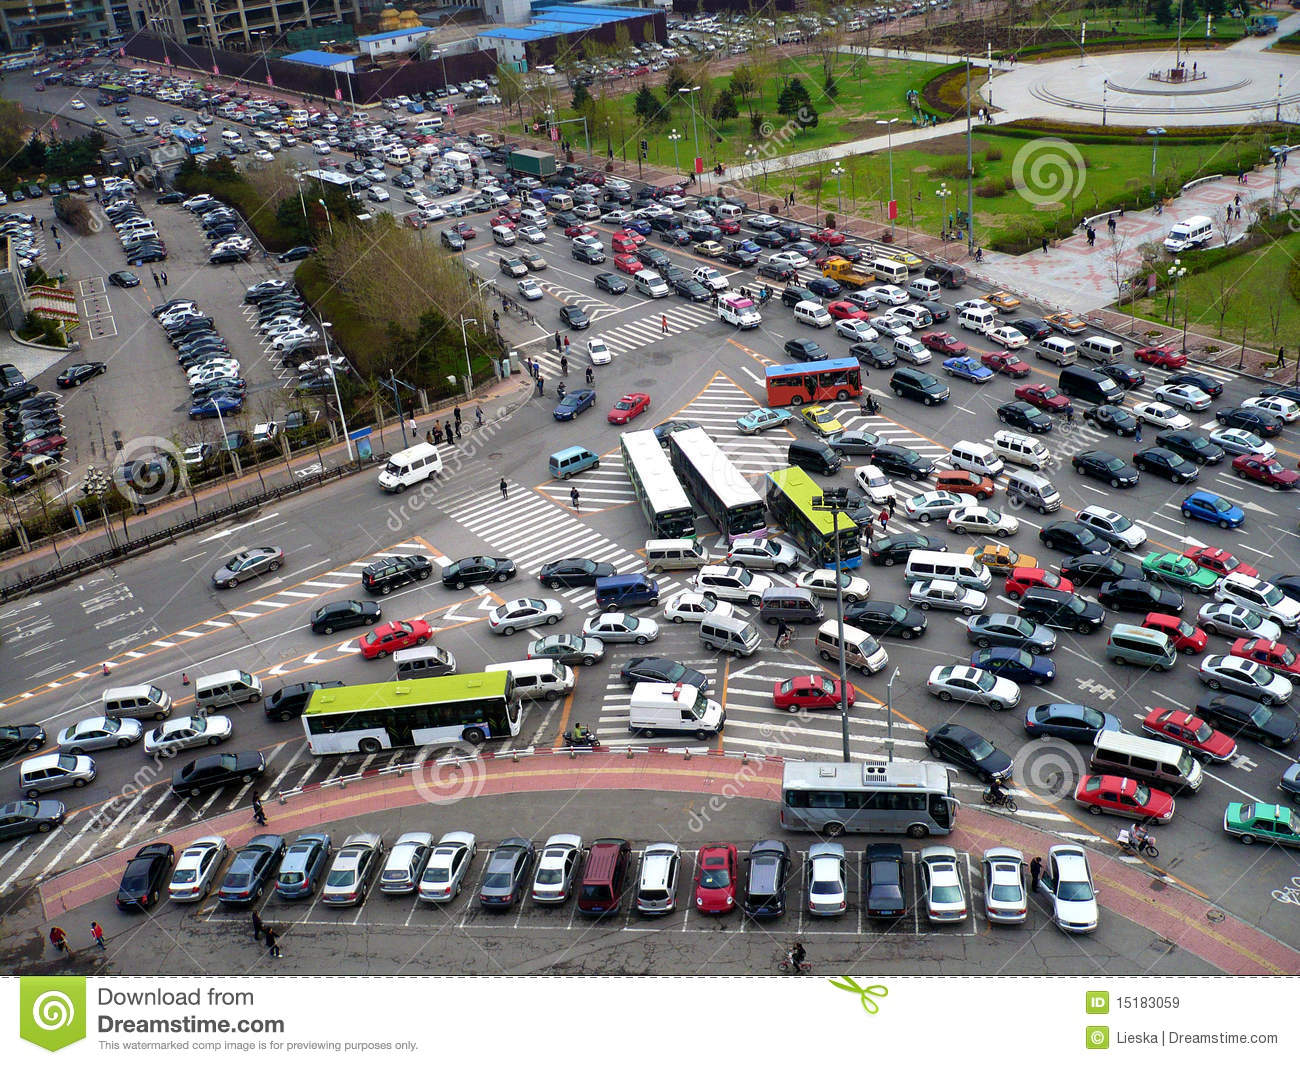 https://thumbs.dreamstime.com/z/traffic-jam-15183059.jpg